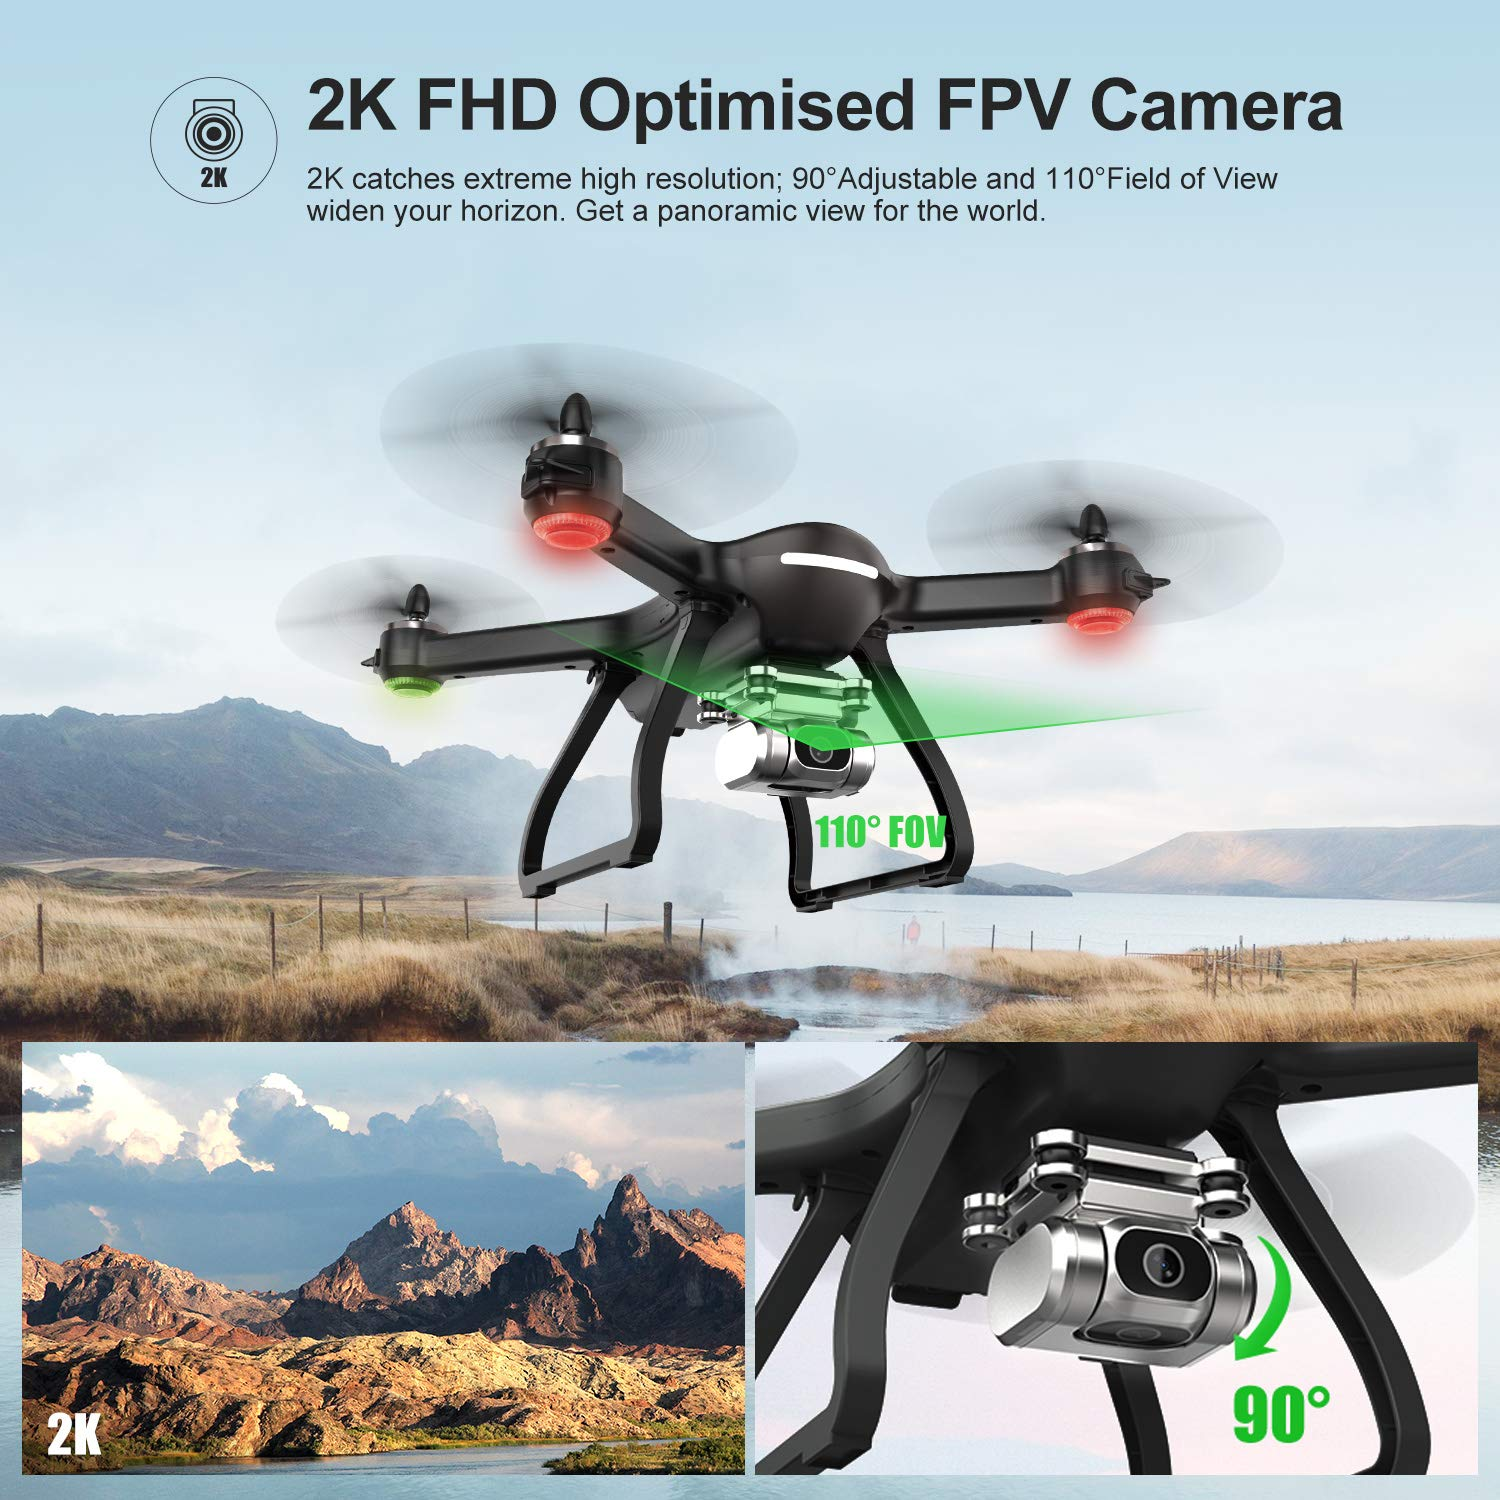 Professional Drone-2K FHD Camera-WI-Fi FPV Live Video-GPS-5GHz RC Quadcopter-9